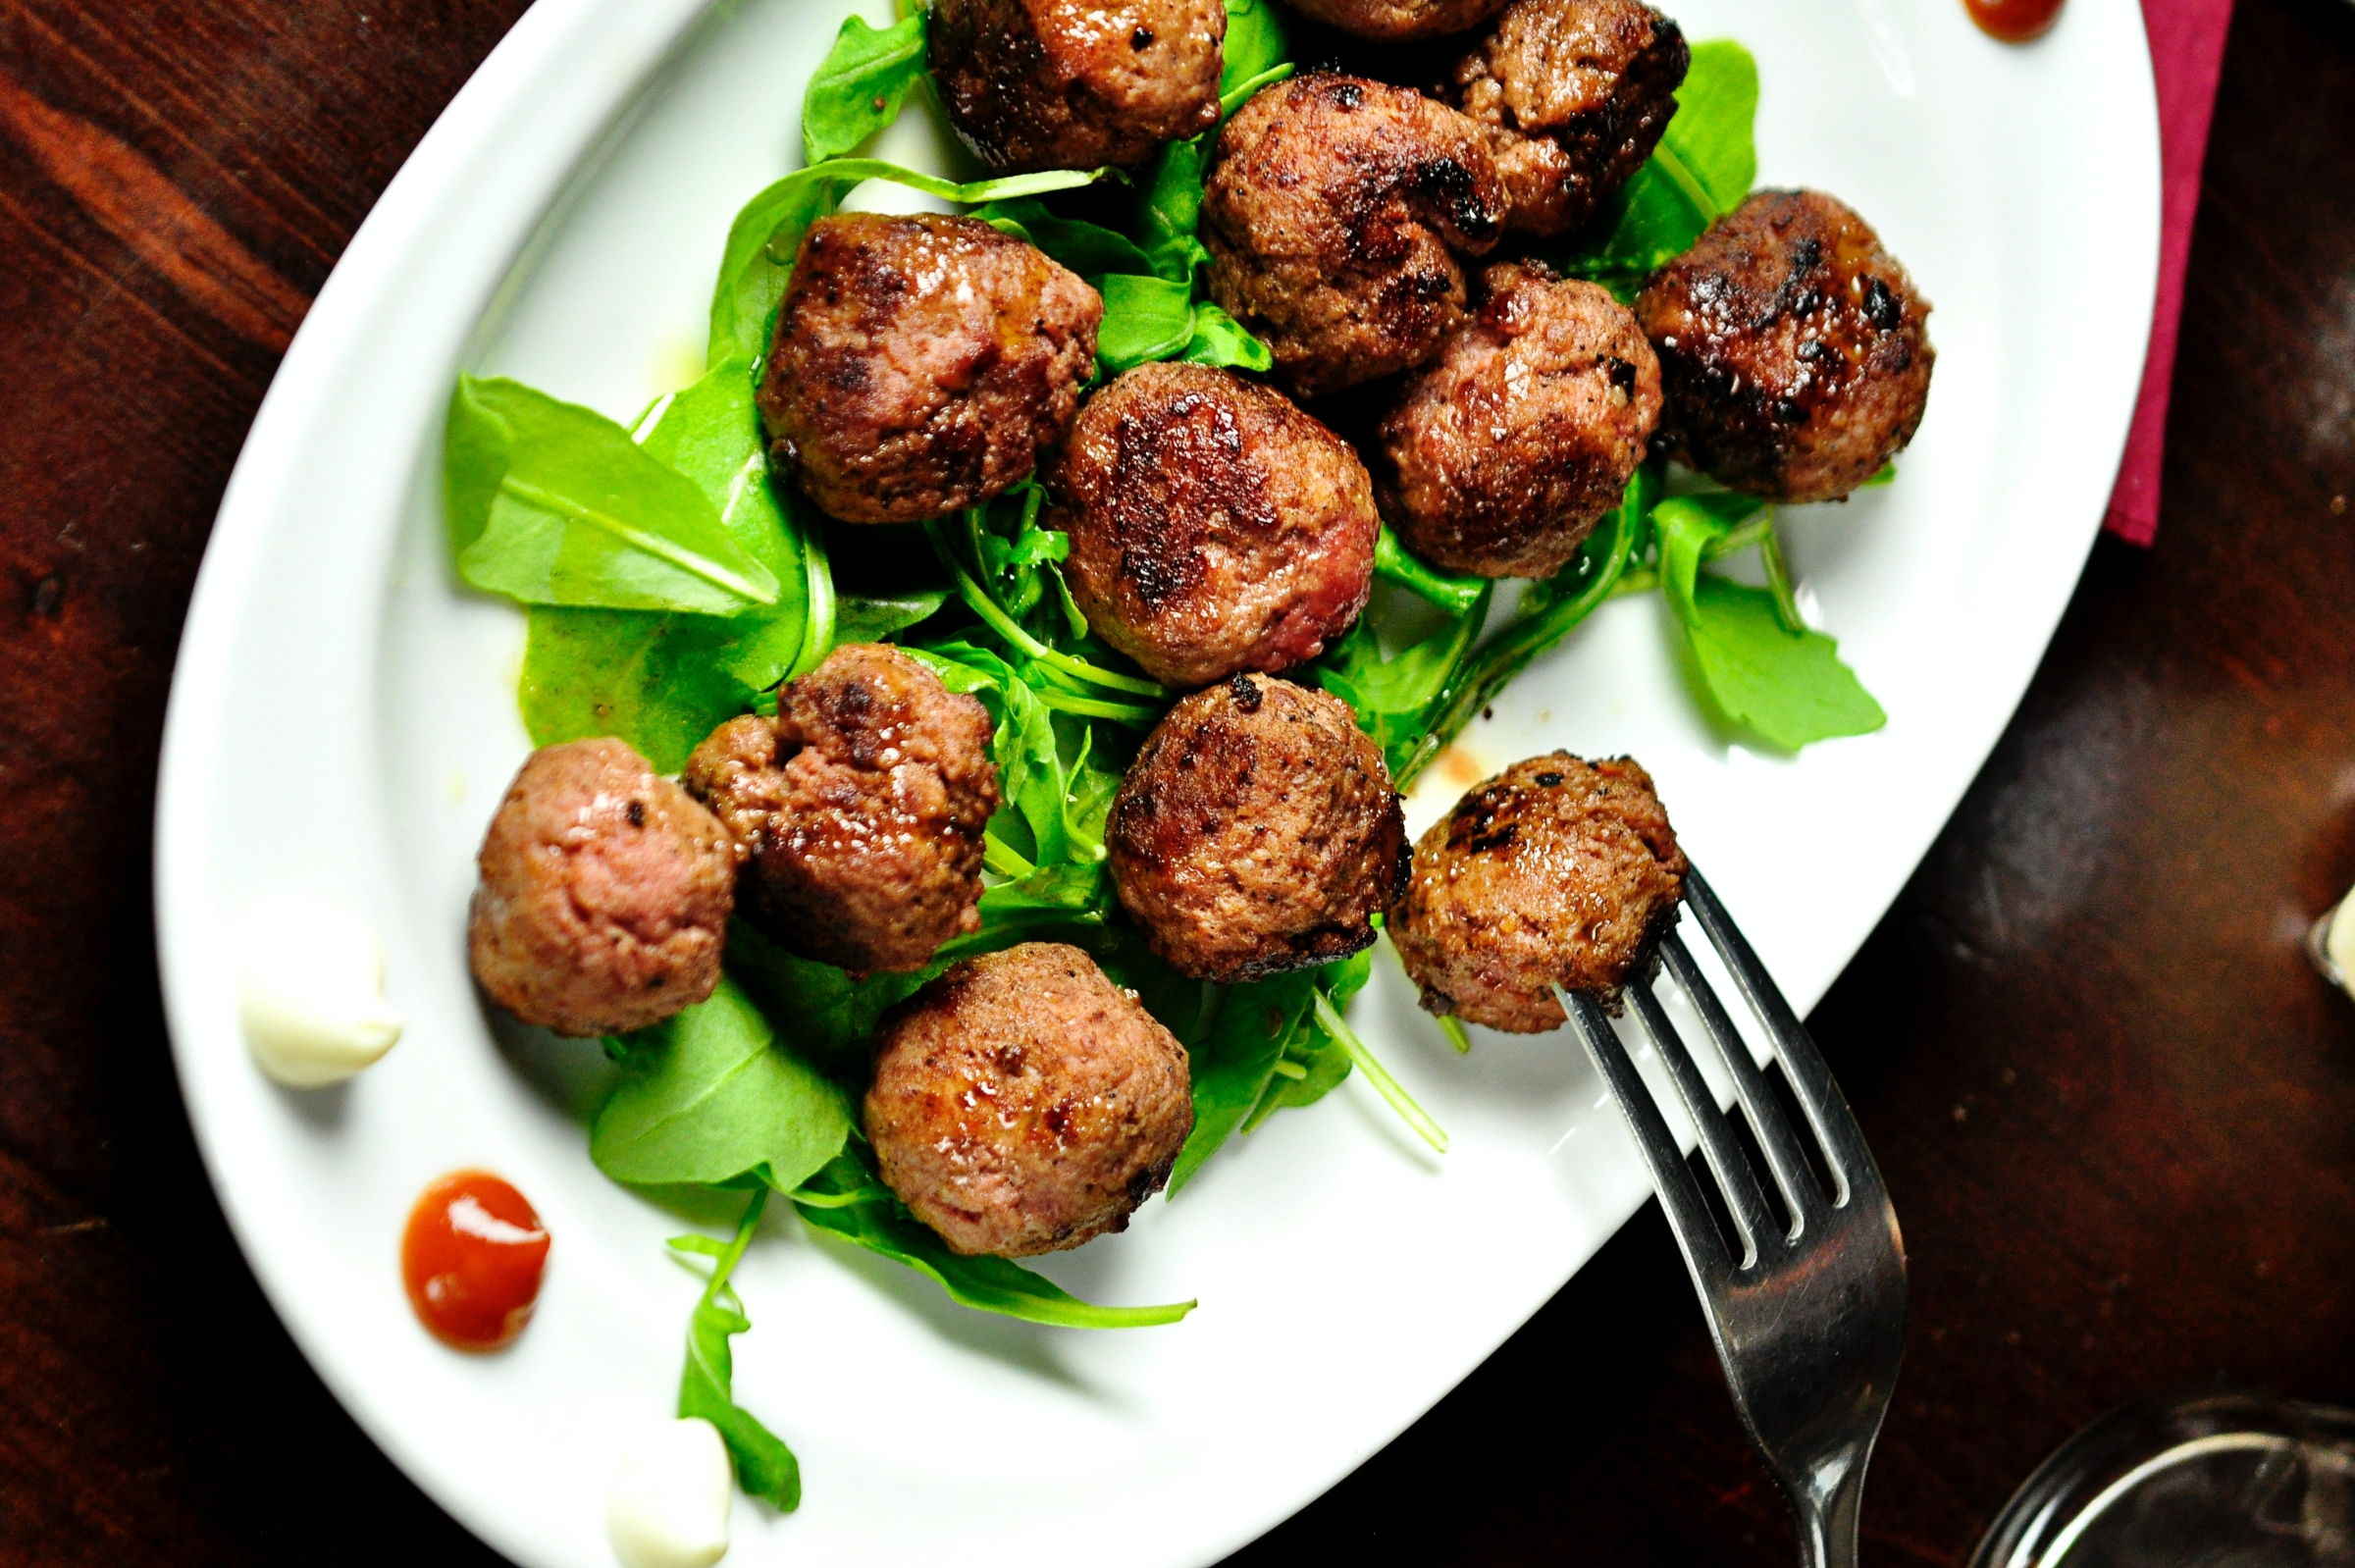 Can I eat meatballs on keto diet?